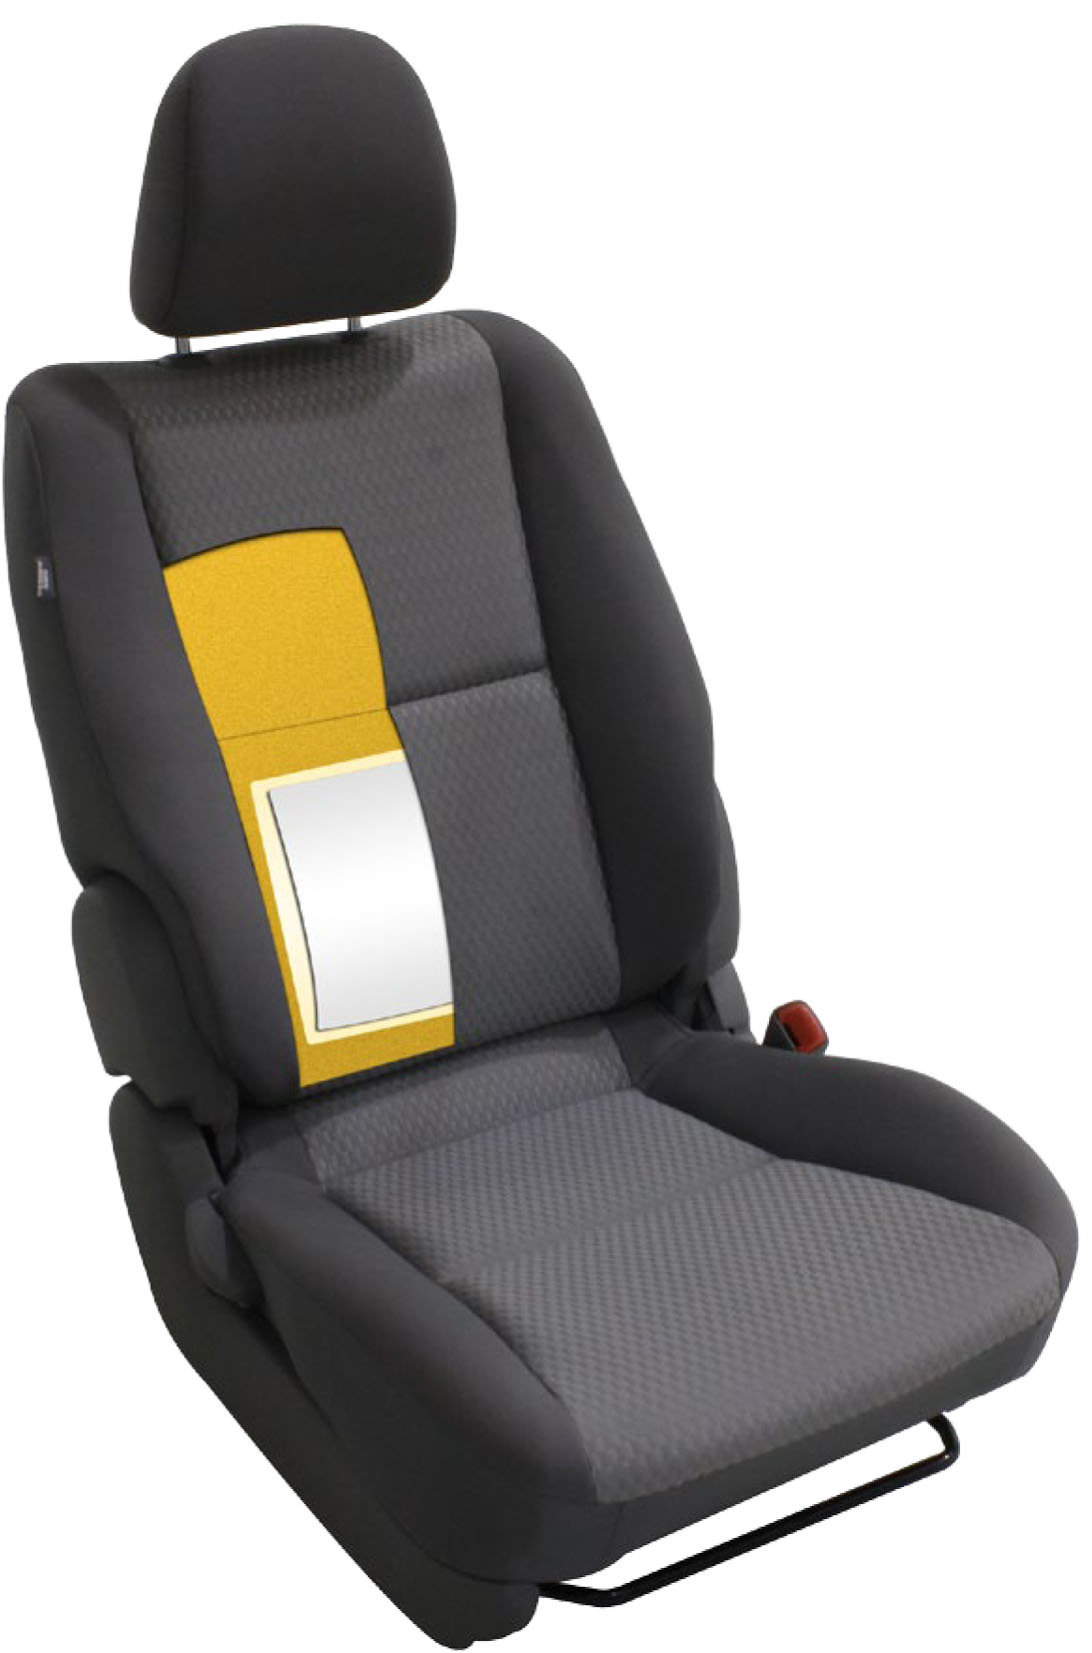 Car seat lumbar support for comfort